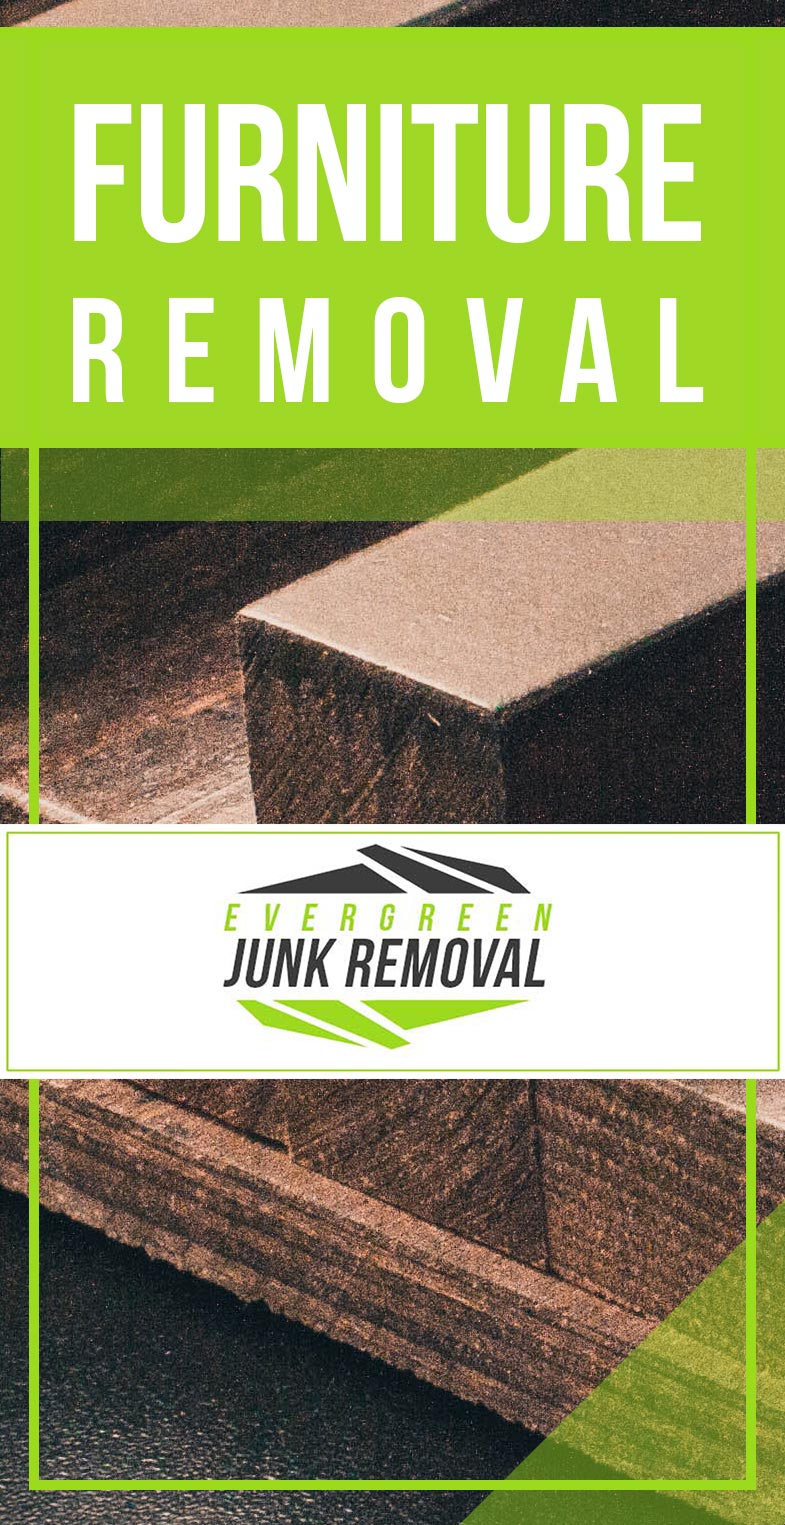 Redford Furniture Removal